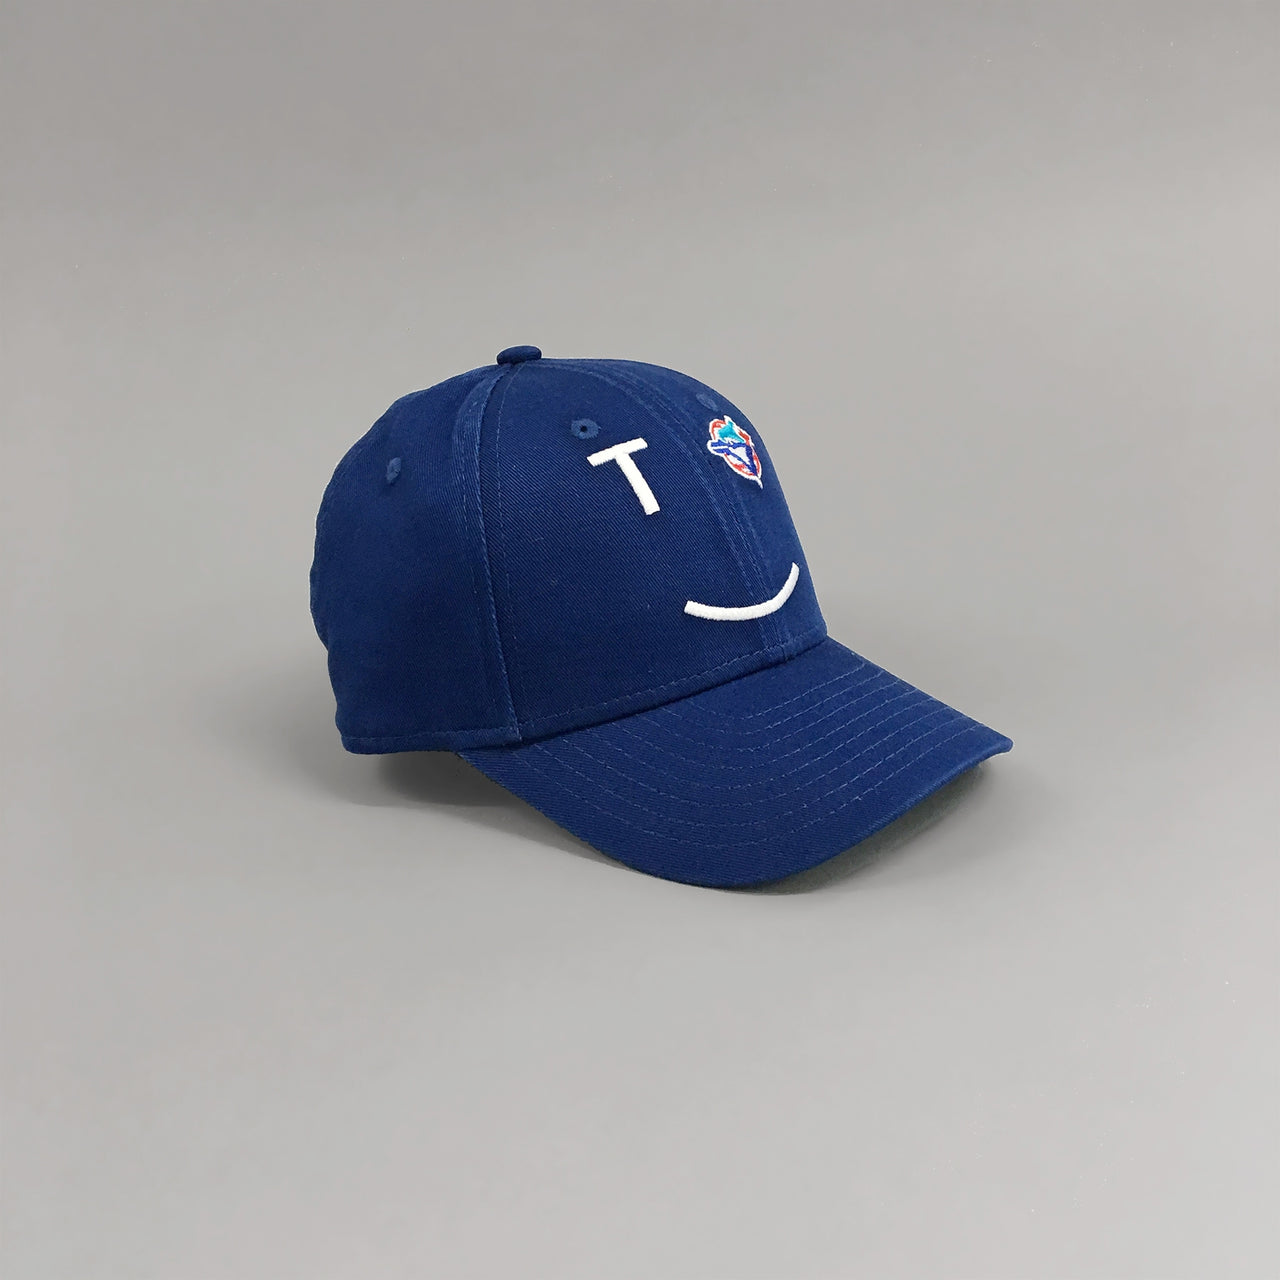 9FORTY To Smiley Jays Kids Cap